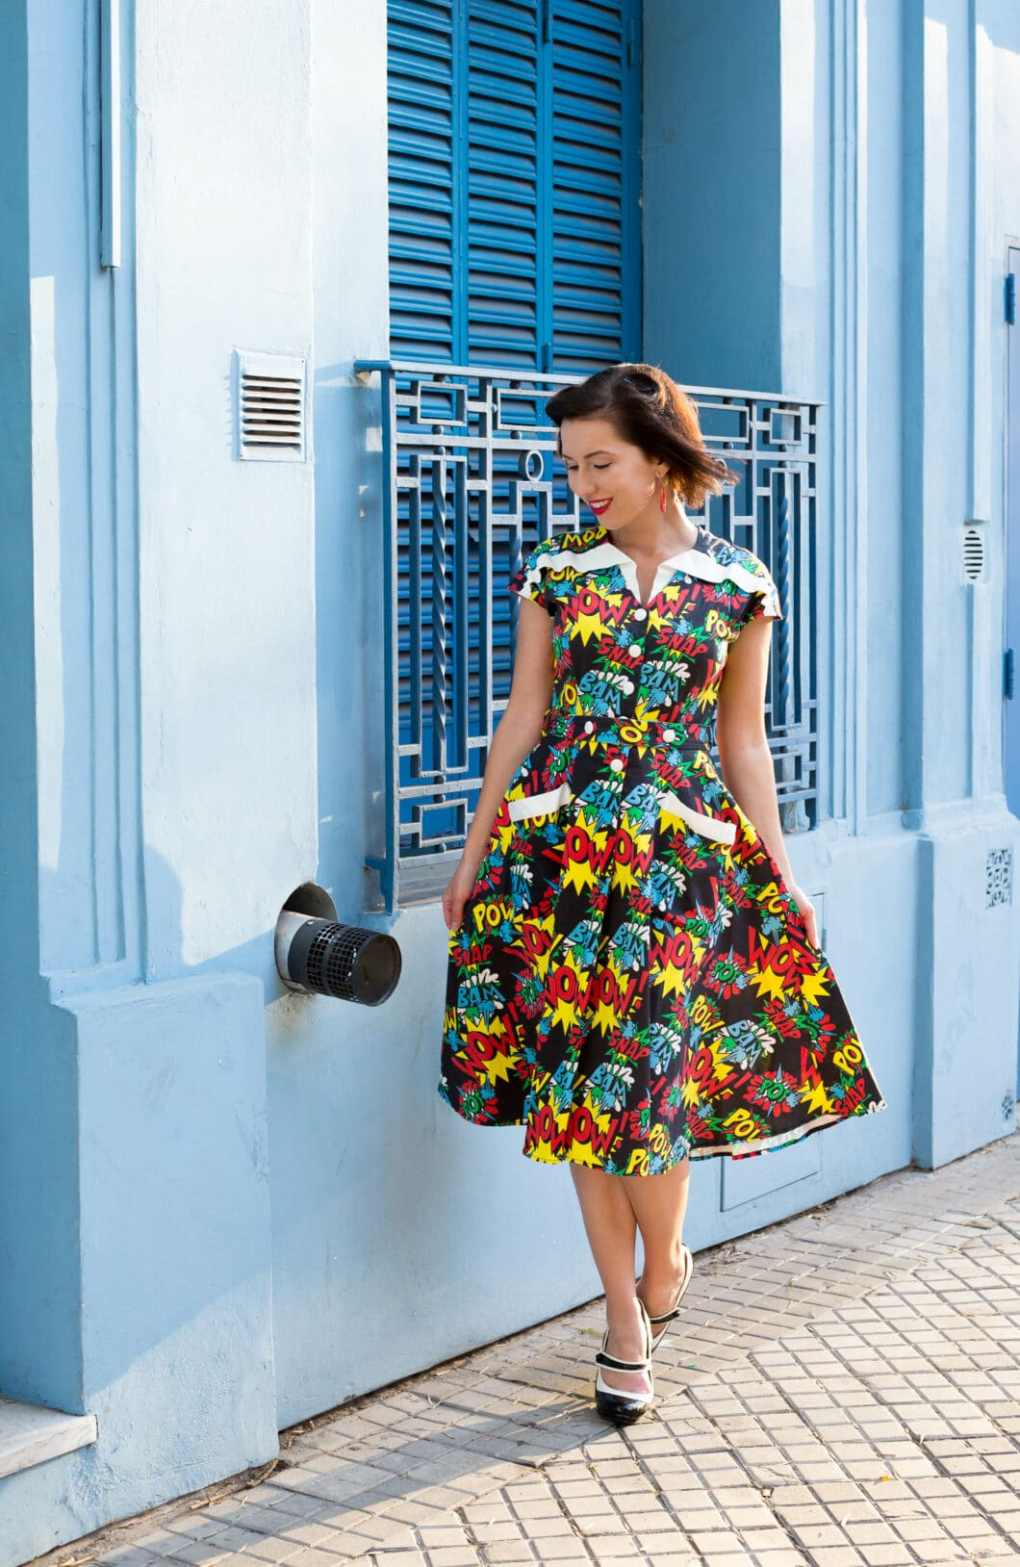 Unique Vintage pop art dress